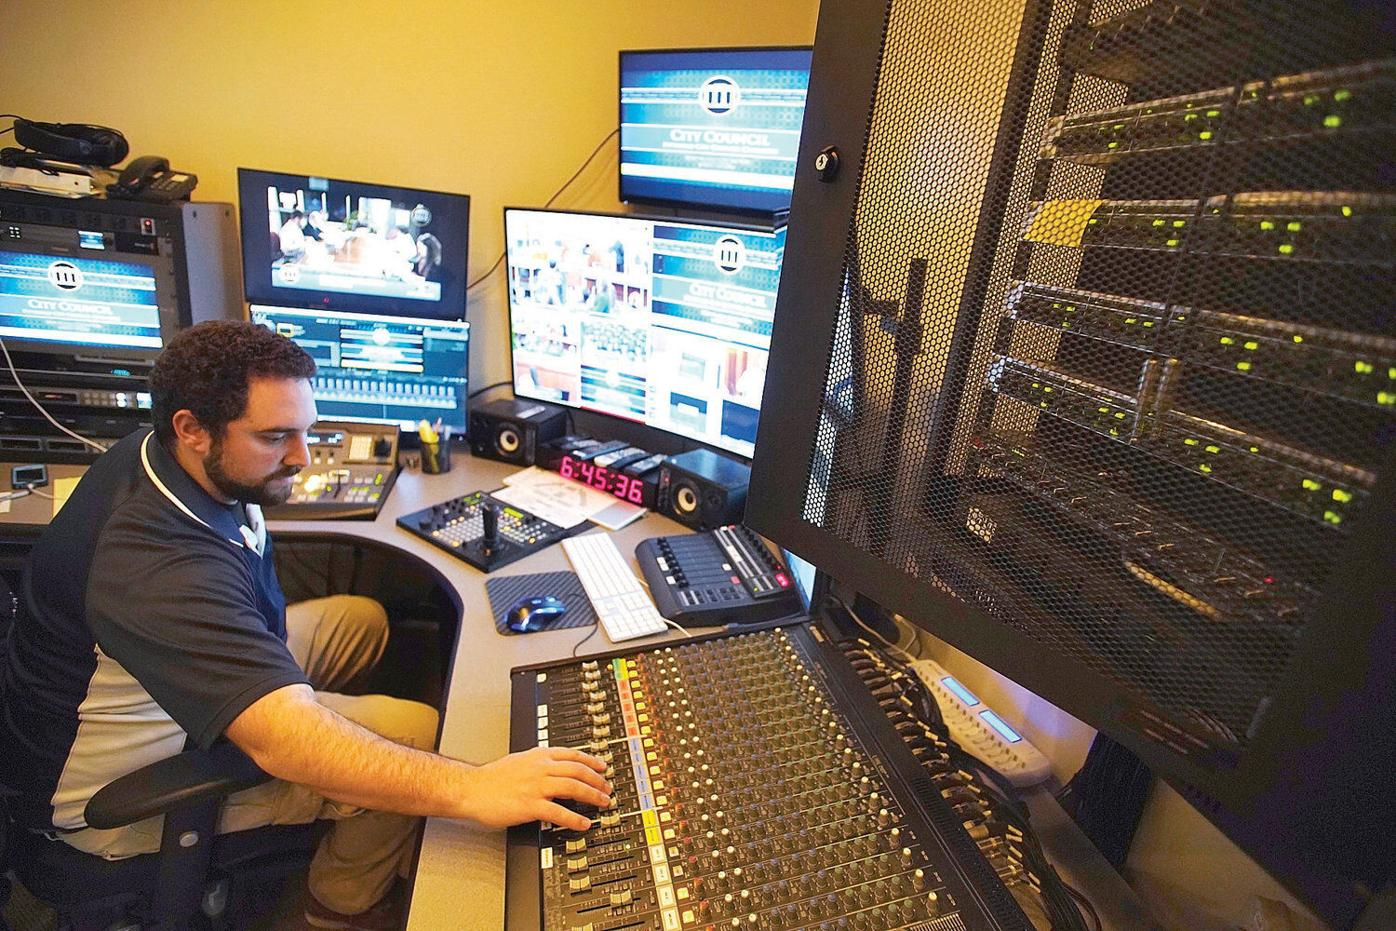 FCC ruling could threaten public access channels